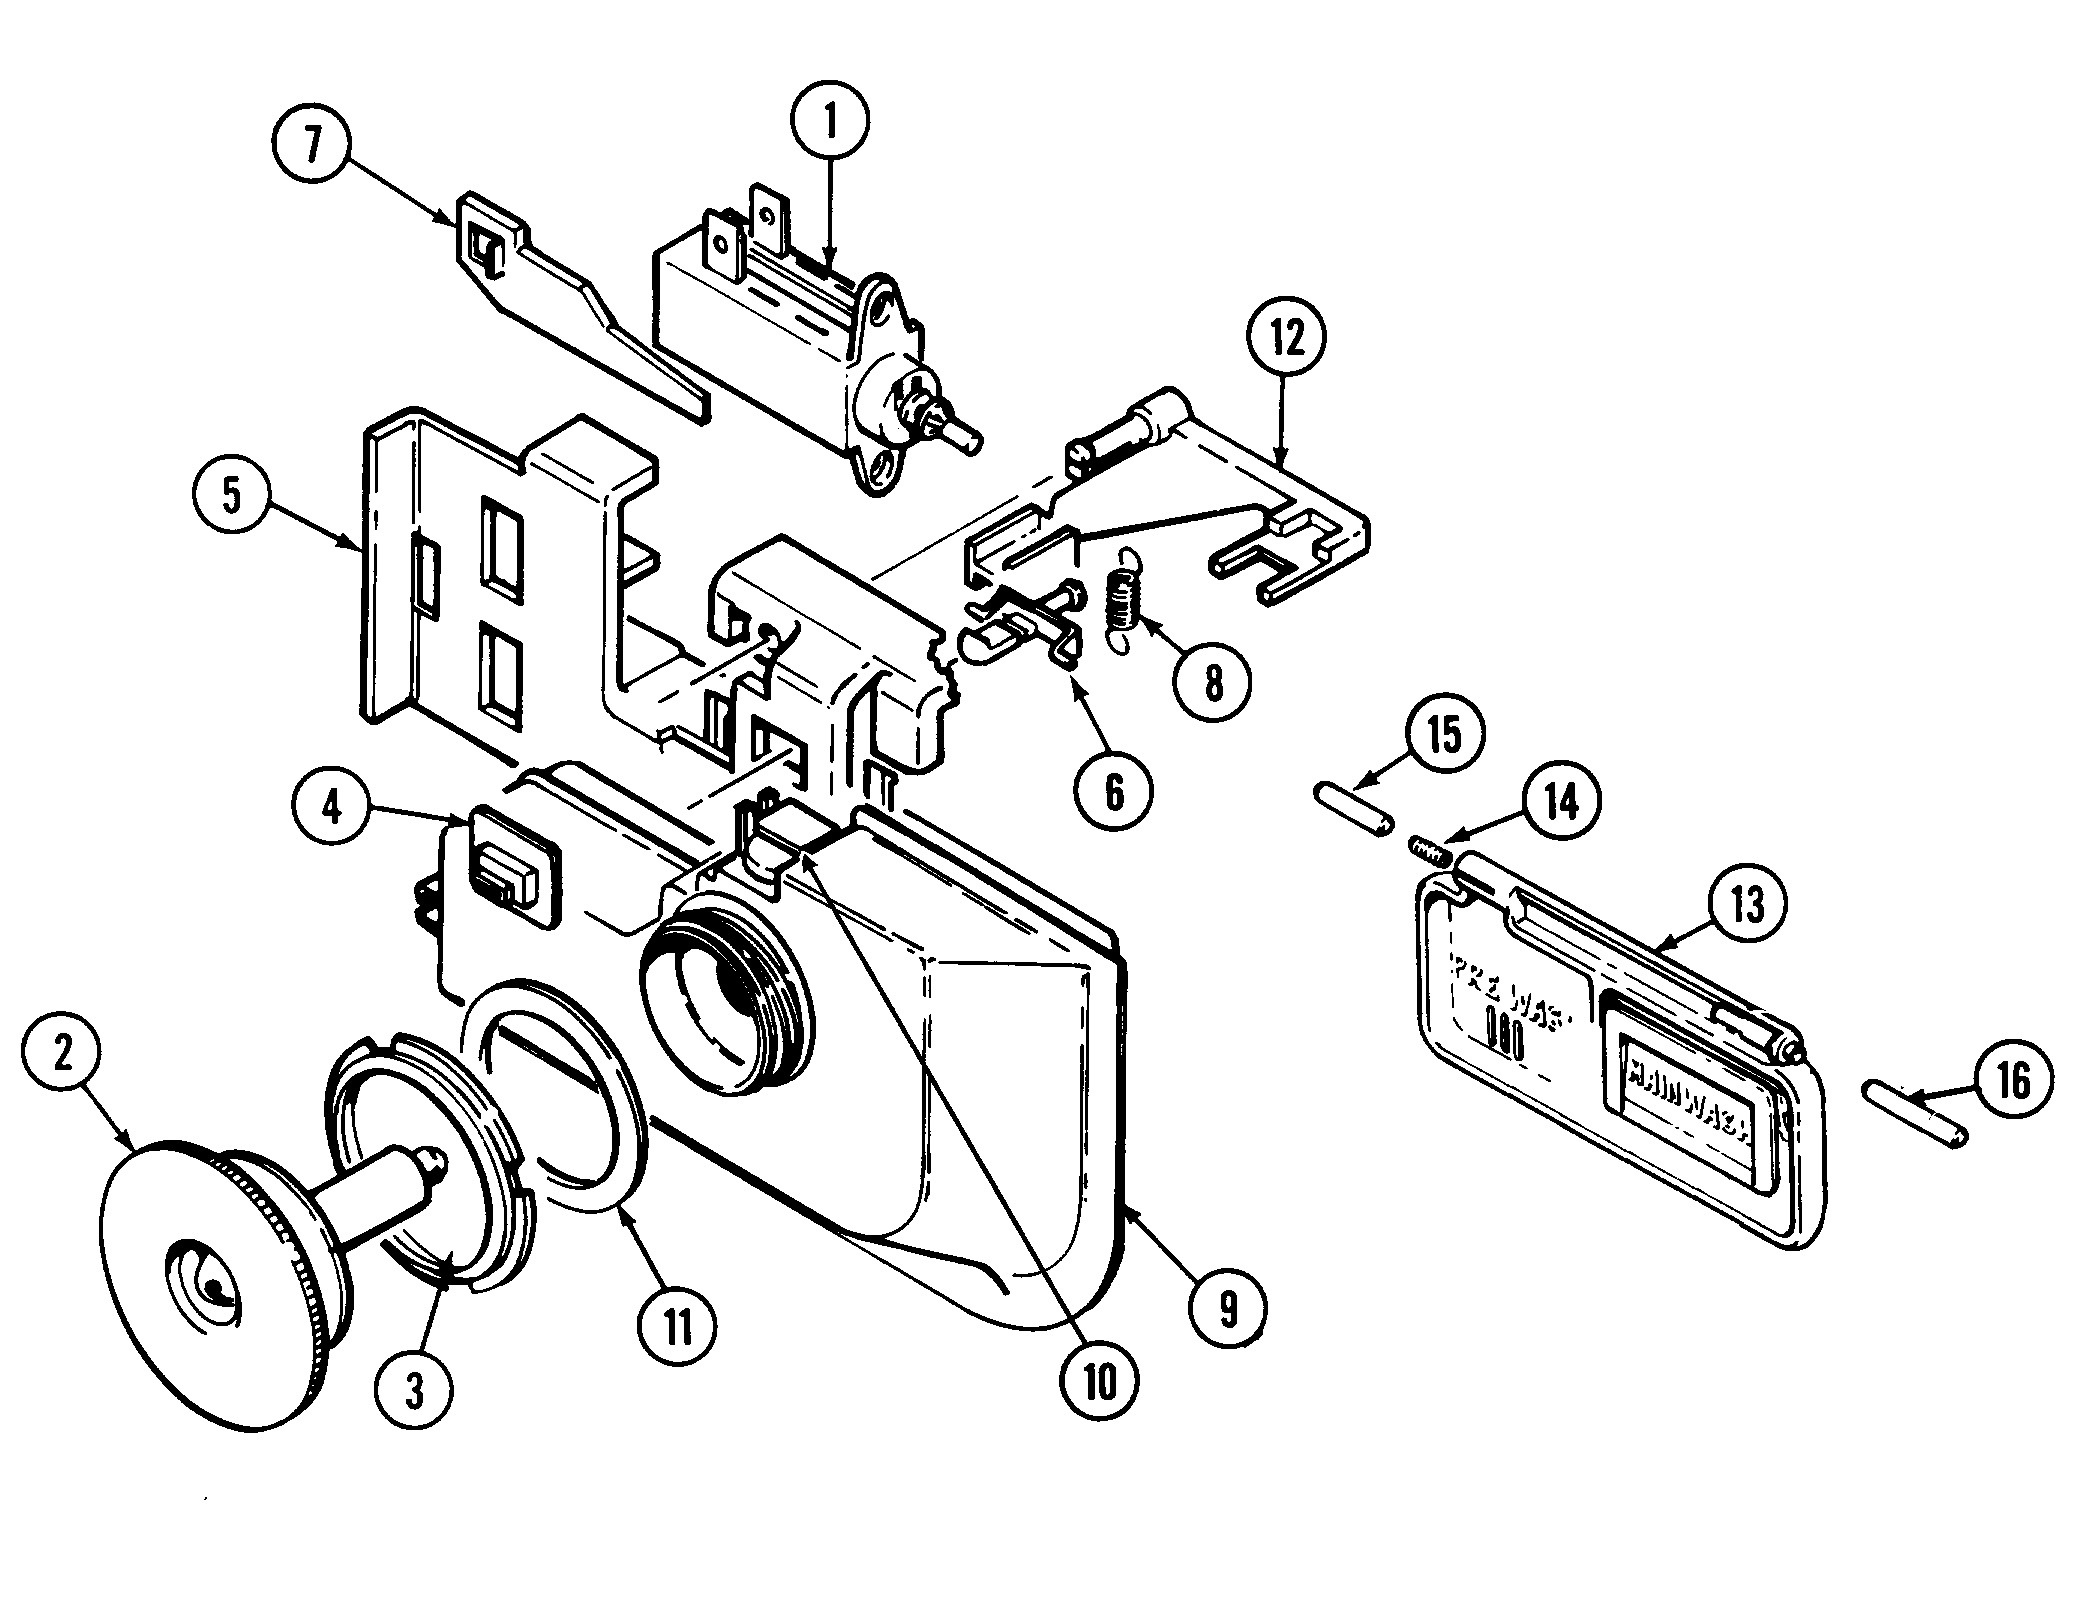 Diagram dual float switch wiring base station definition m0112066 00003 diagram dual float switch wiringhtml